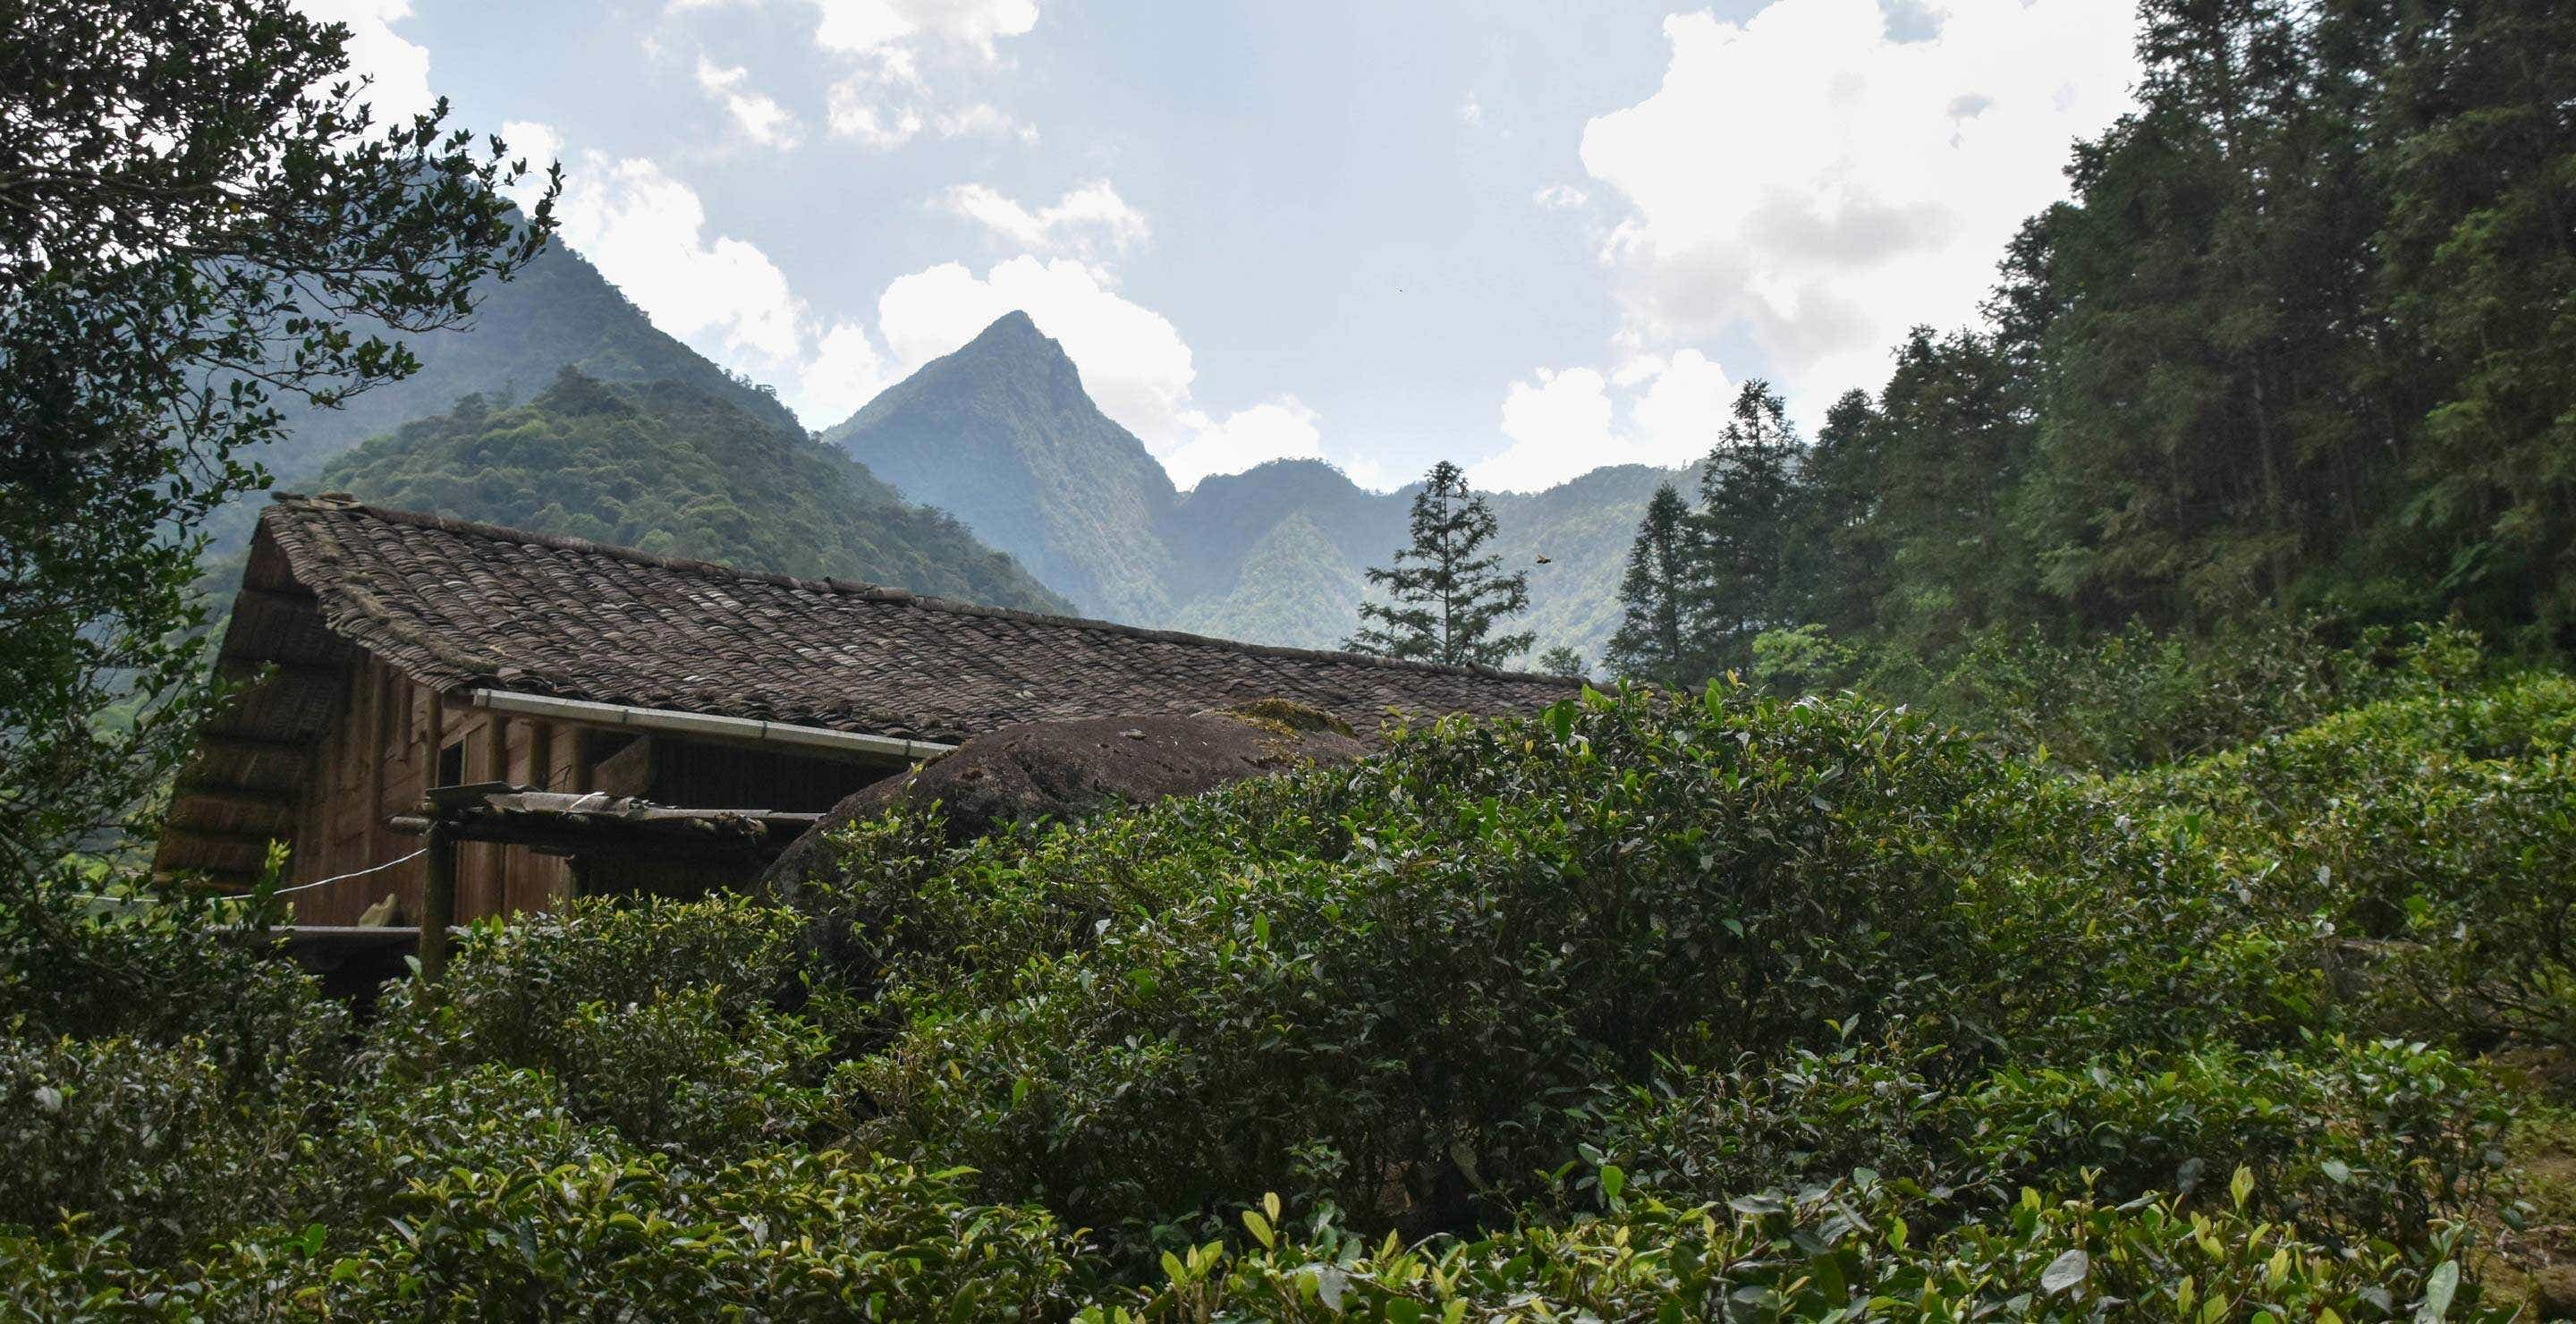 tea plants grow on the slopes above our family home in Tongmu